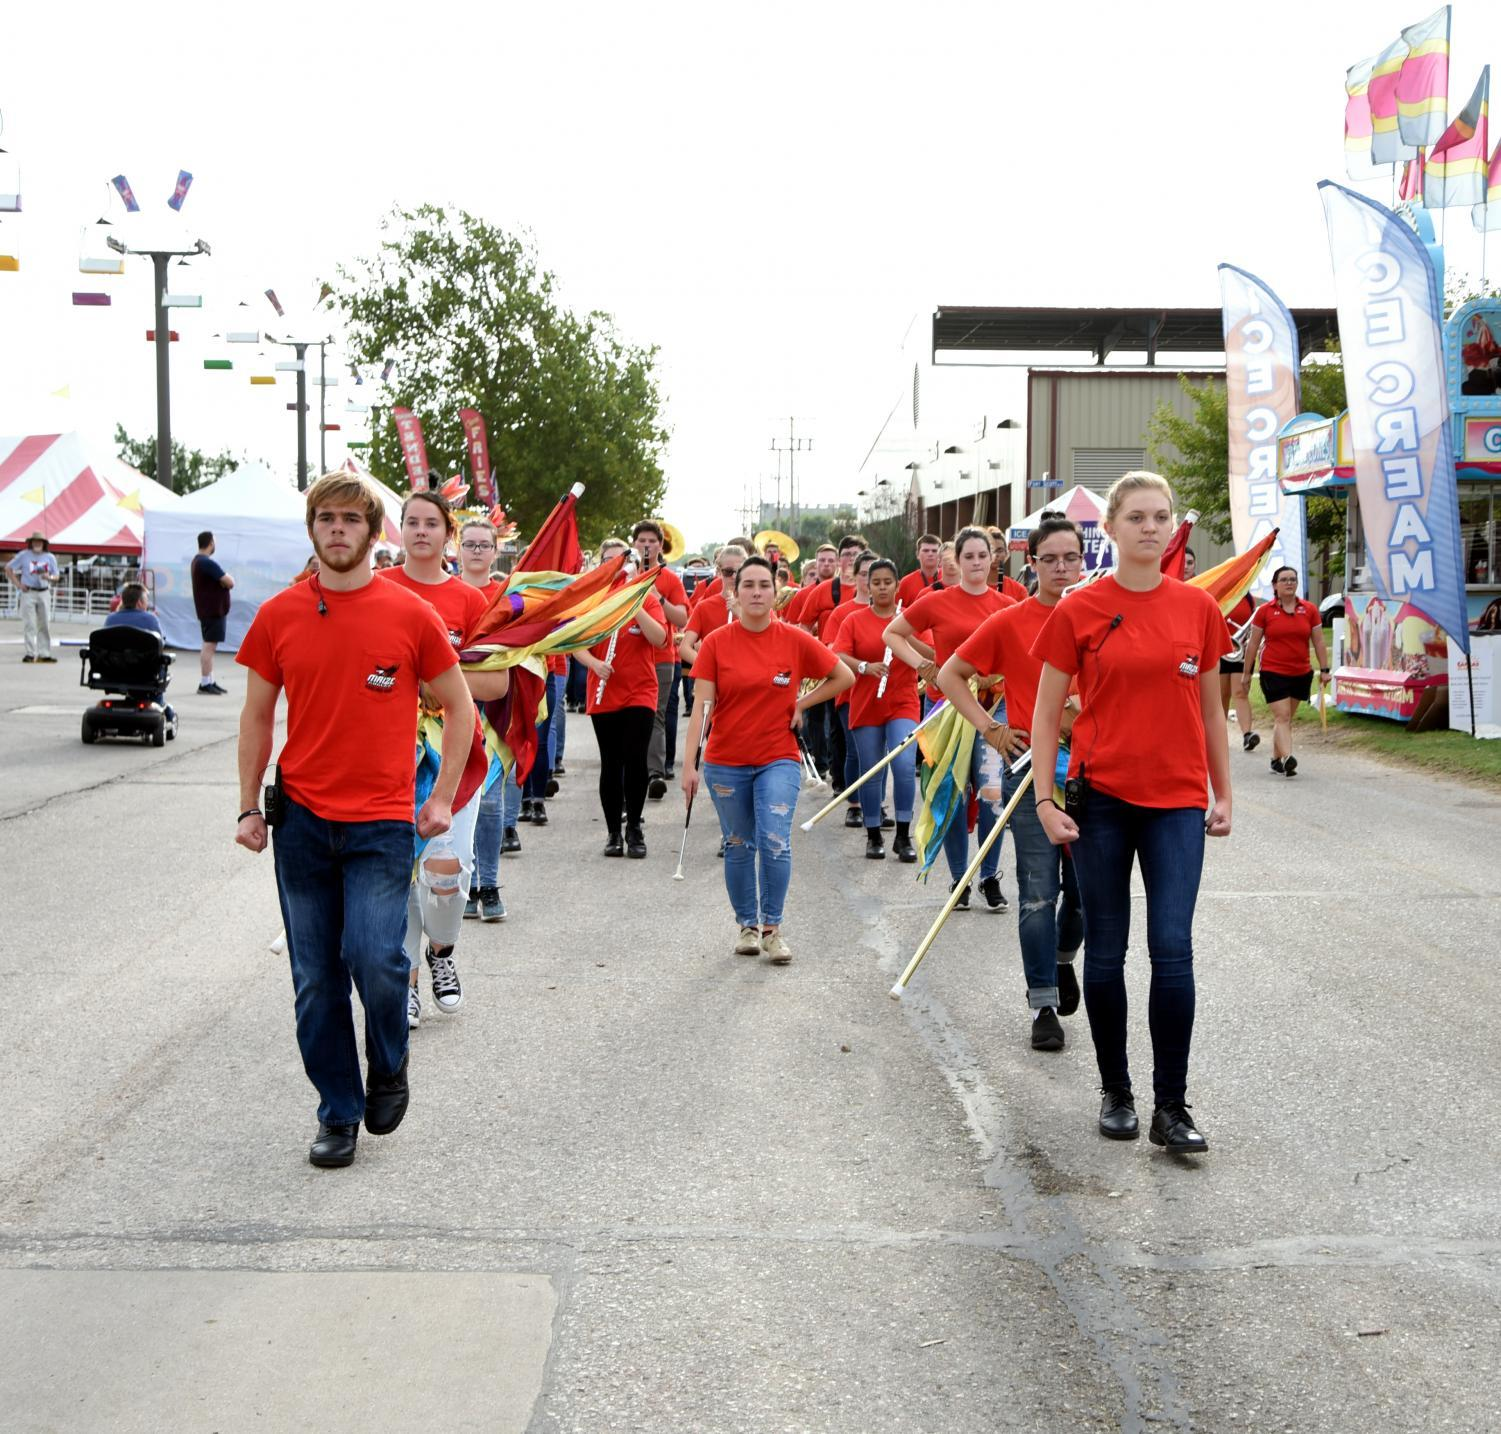 Members of the band perform at the State Fair.